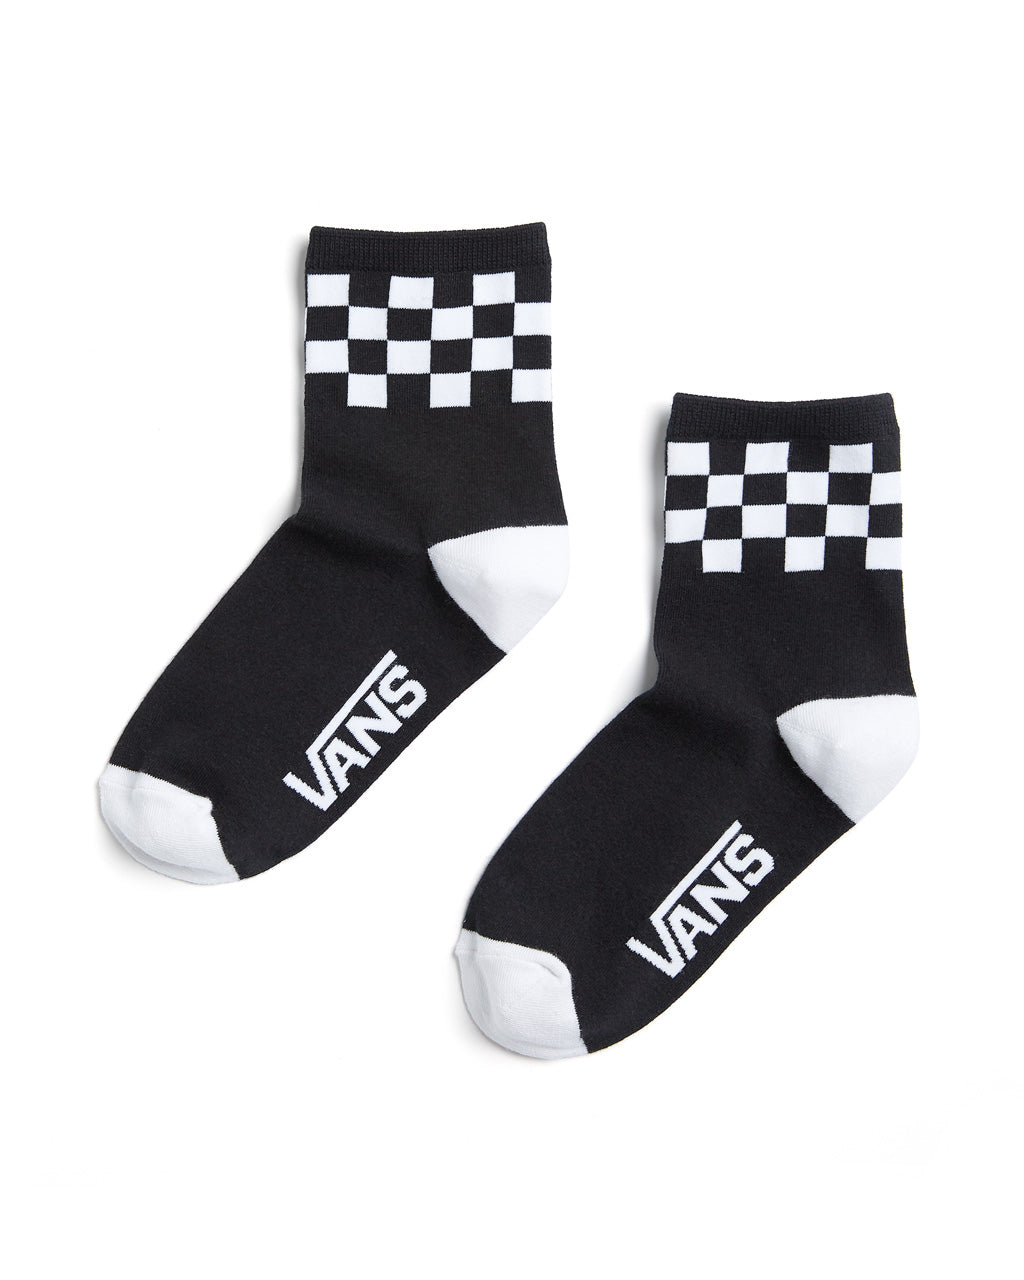 Black crew socks with a black & white checked band around the ankle.